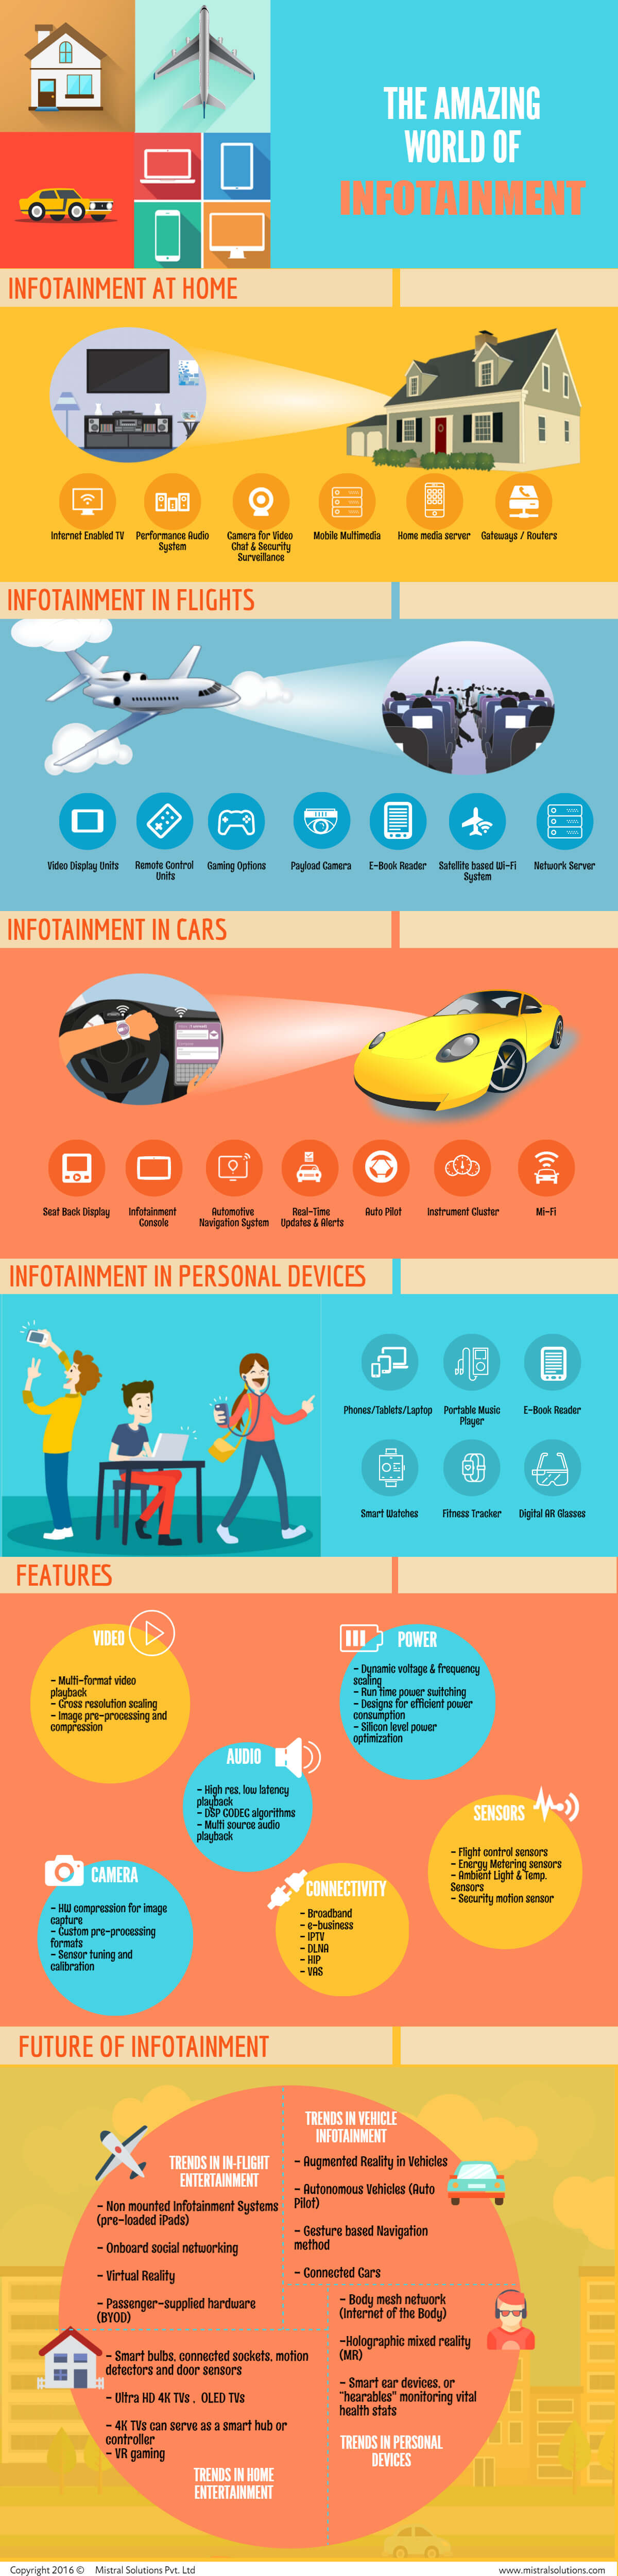 Infotainment Infographic Mistral